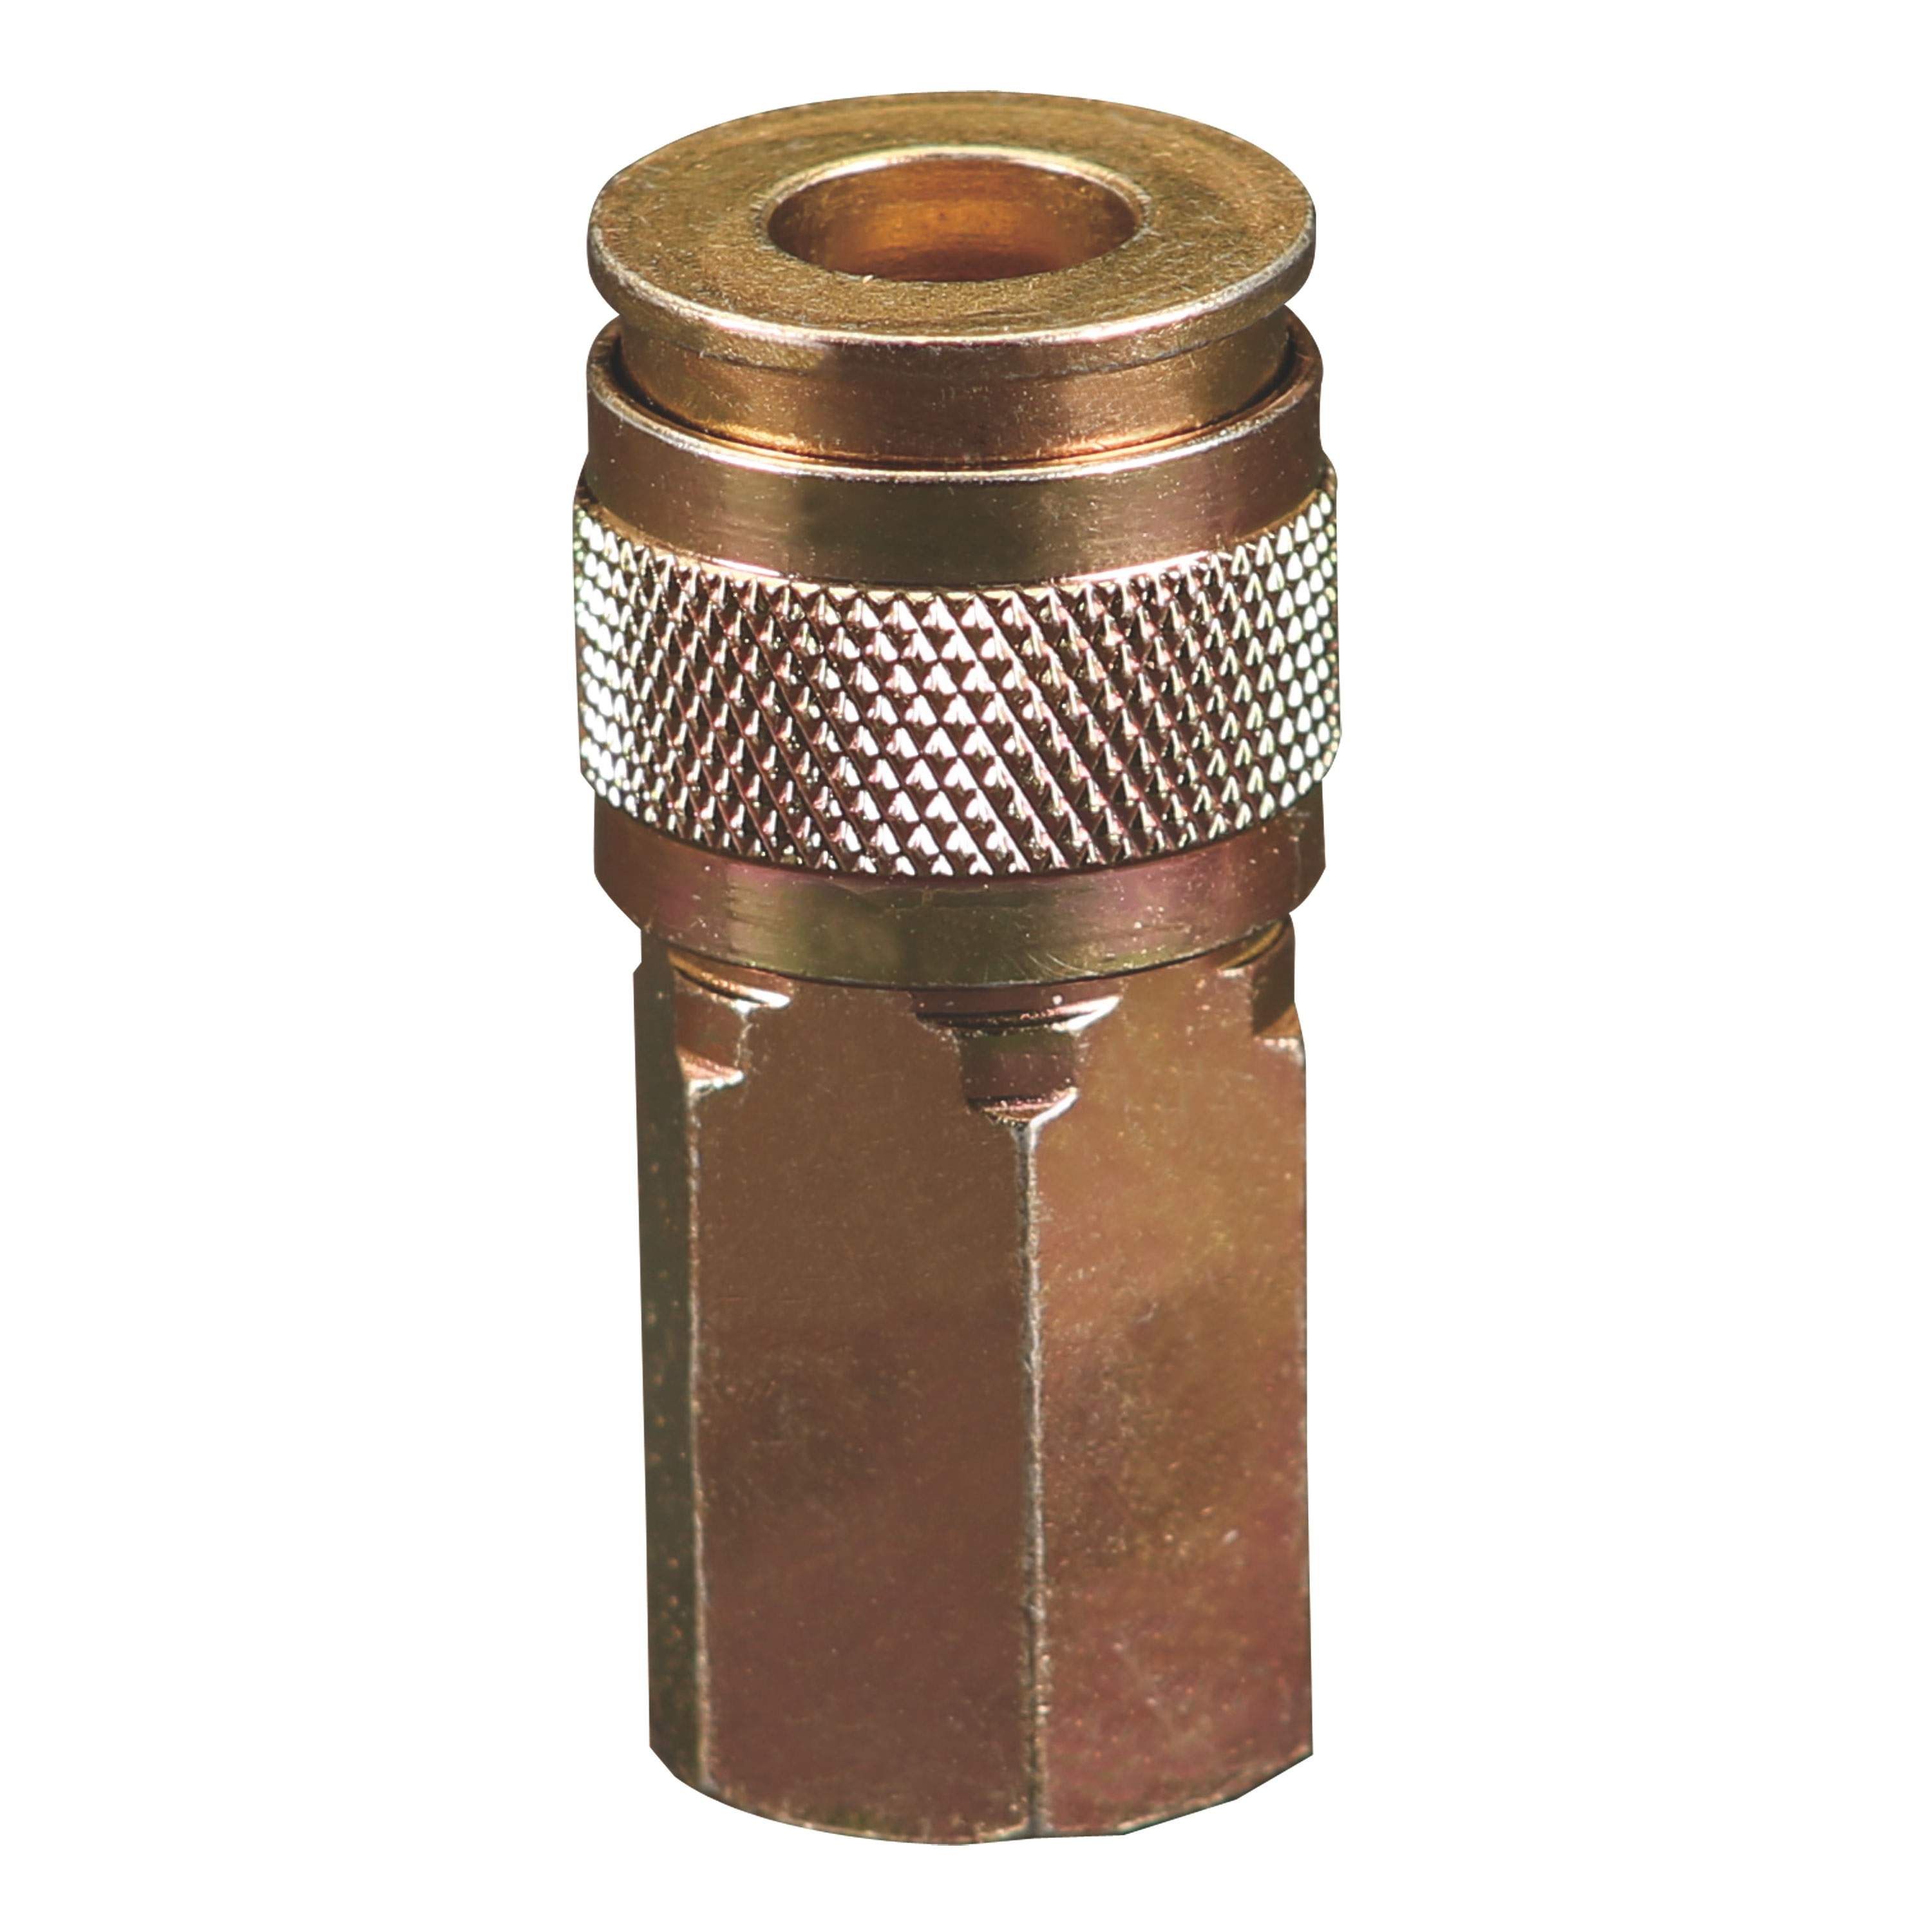 Bostitch - Universal 14 Series Coupler PushToConnect with 14 NPT Female Thread - BTFP72321